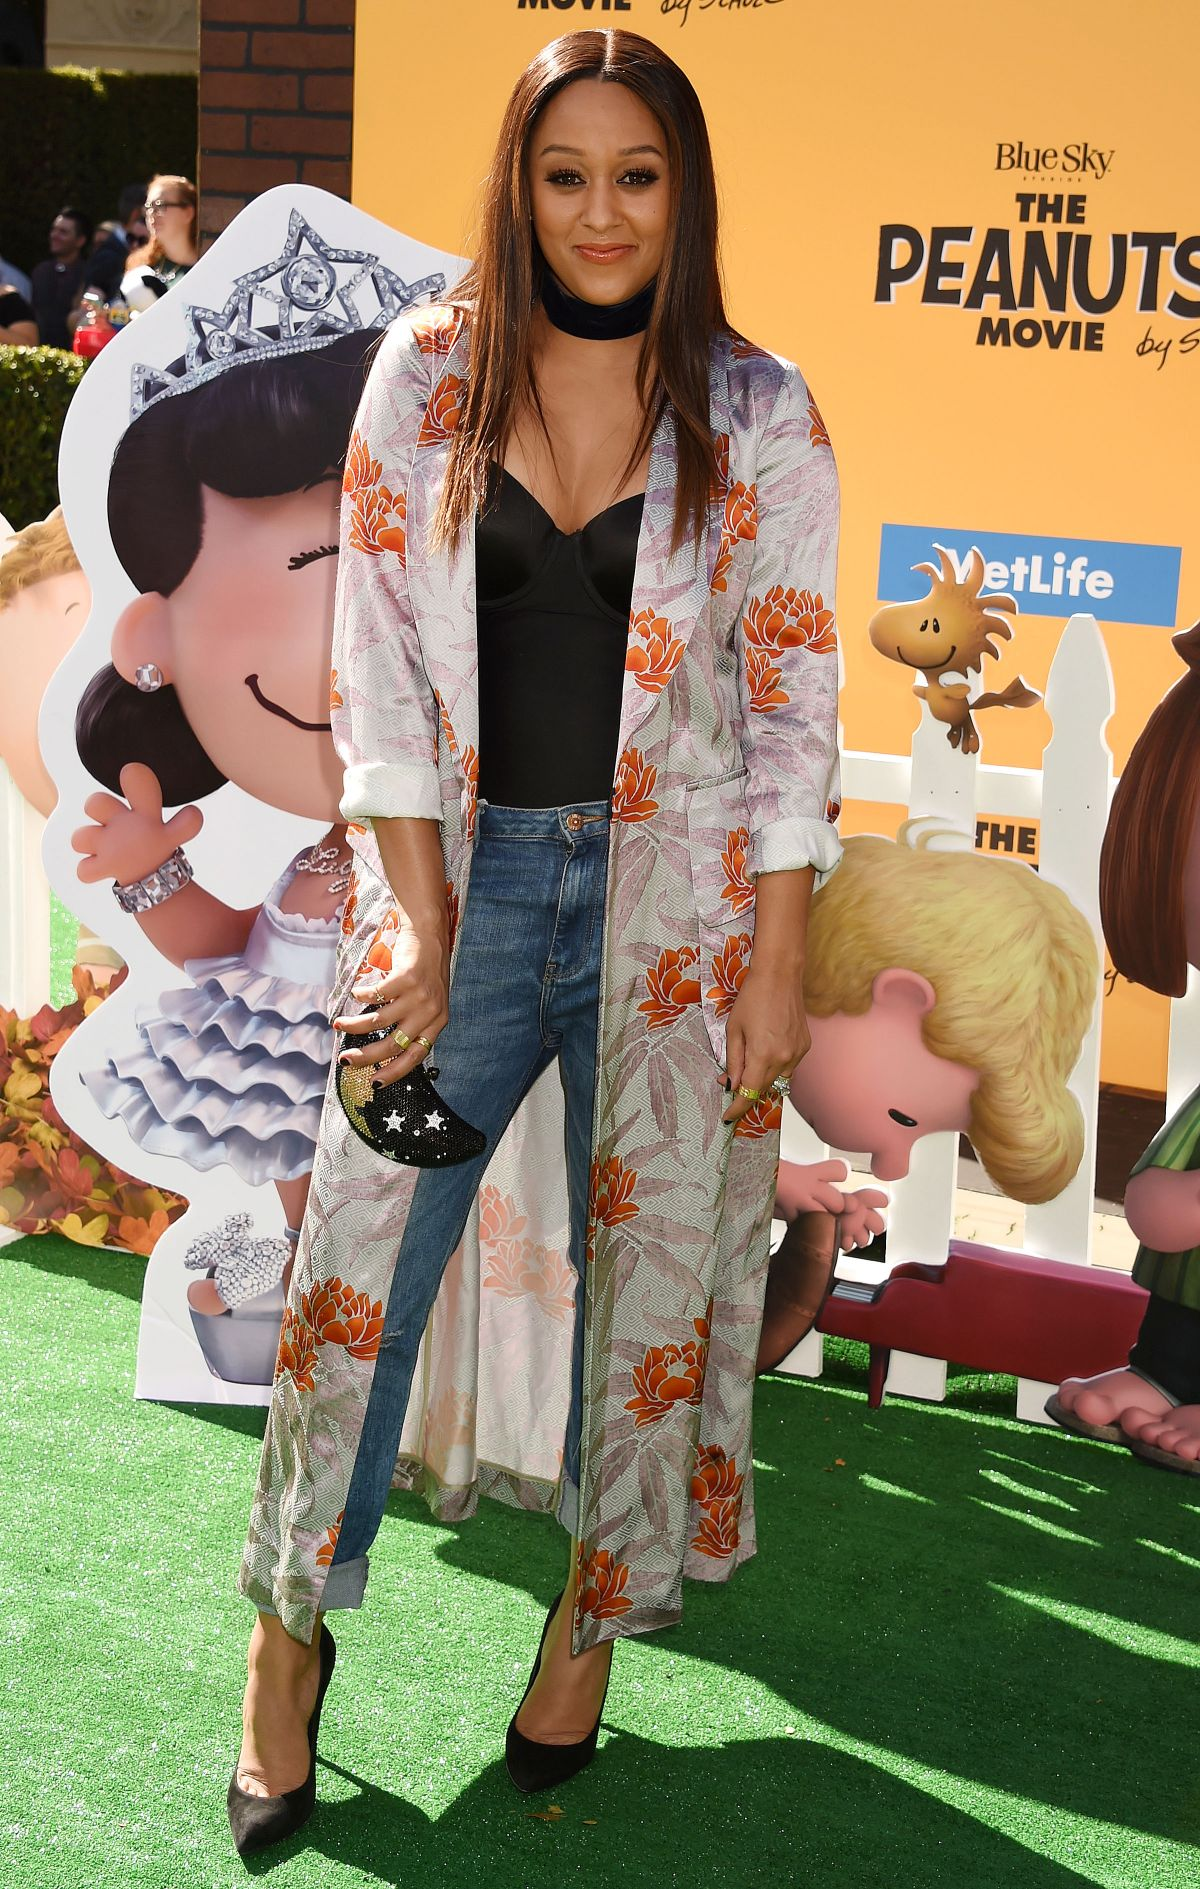 TIA MOWRY at The Peanuts Movie Premiere in Westwood 11/01/2015